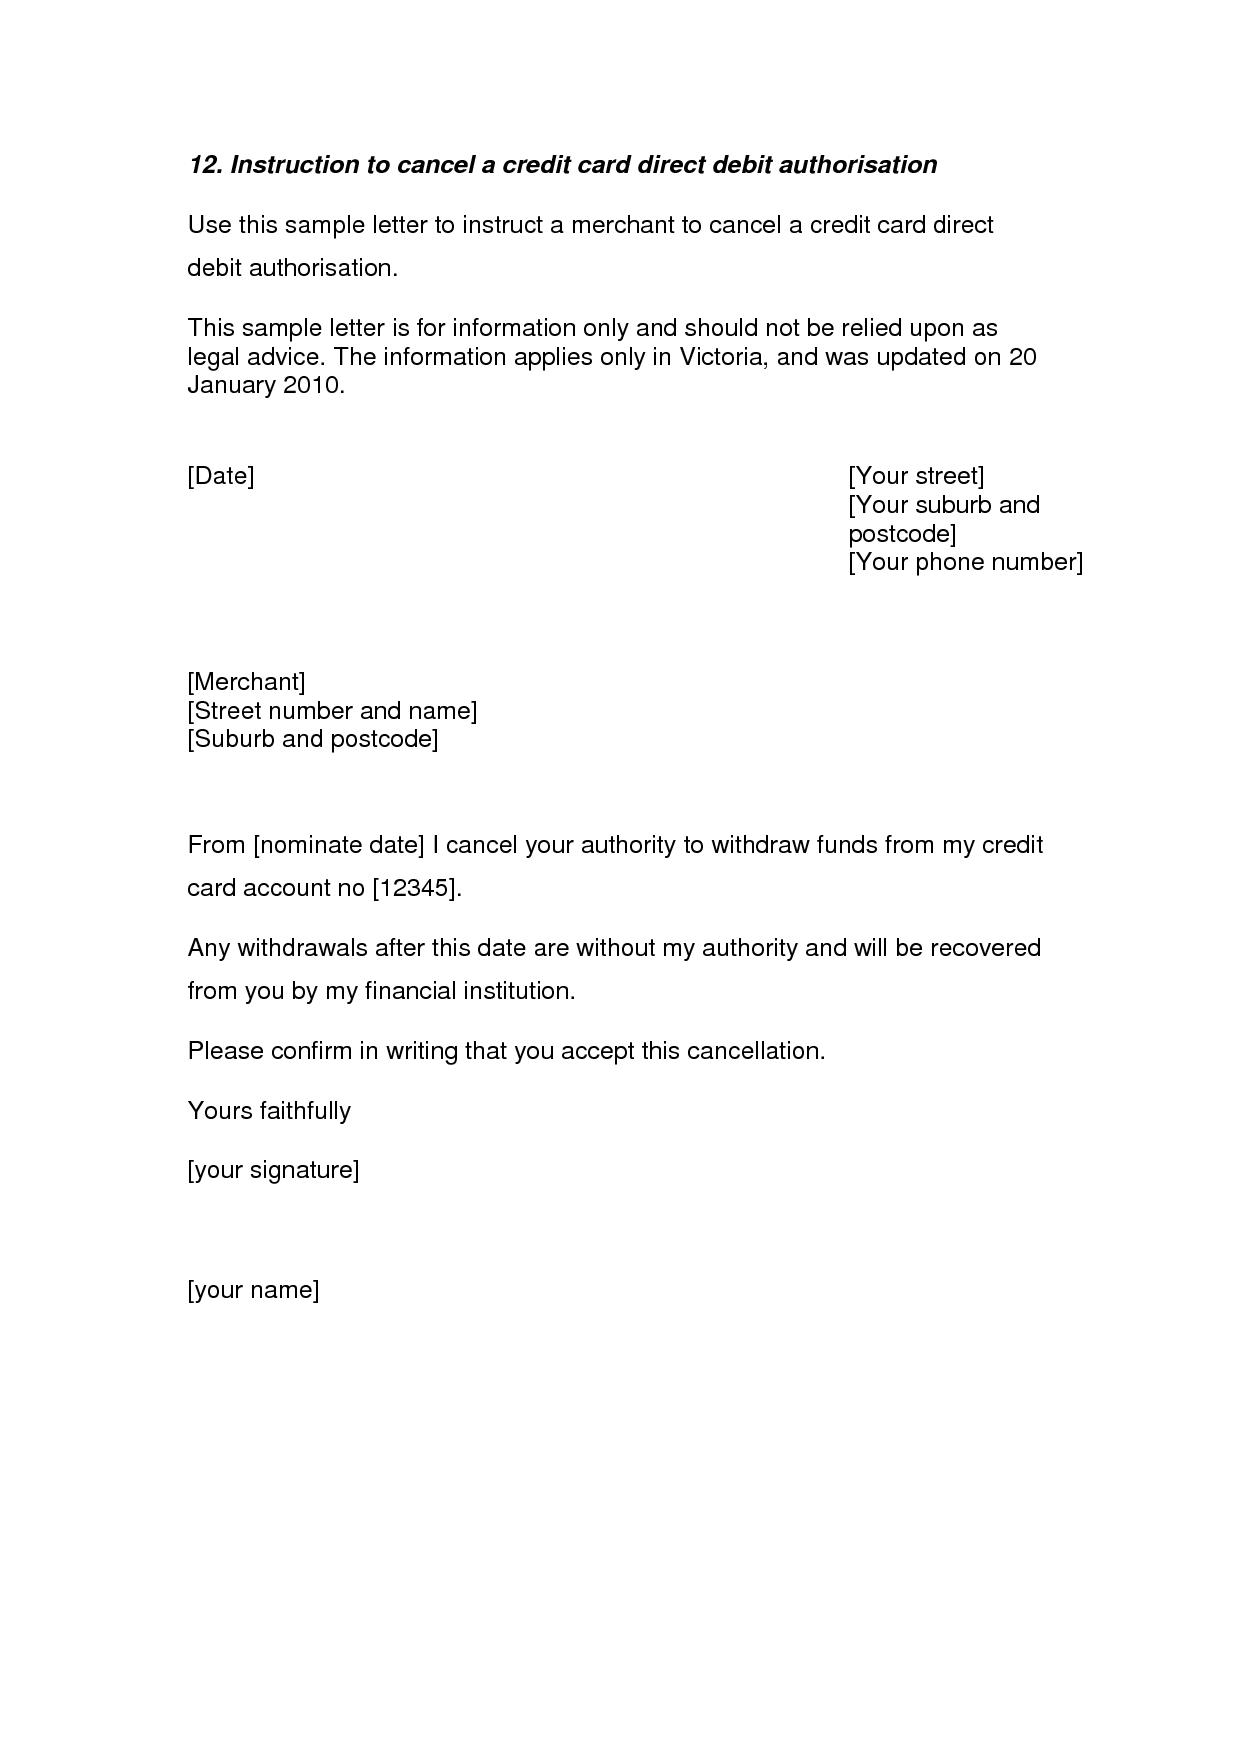 Free Contract Termination Letter Template - Credit Card Cancellation Letter A Credit Card Cancellation Letter